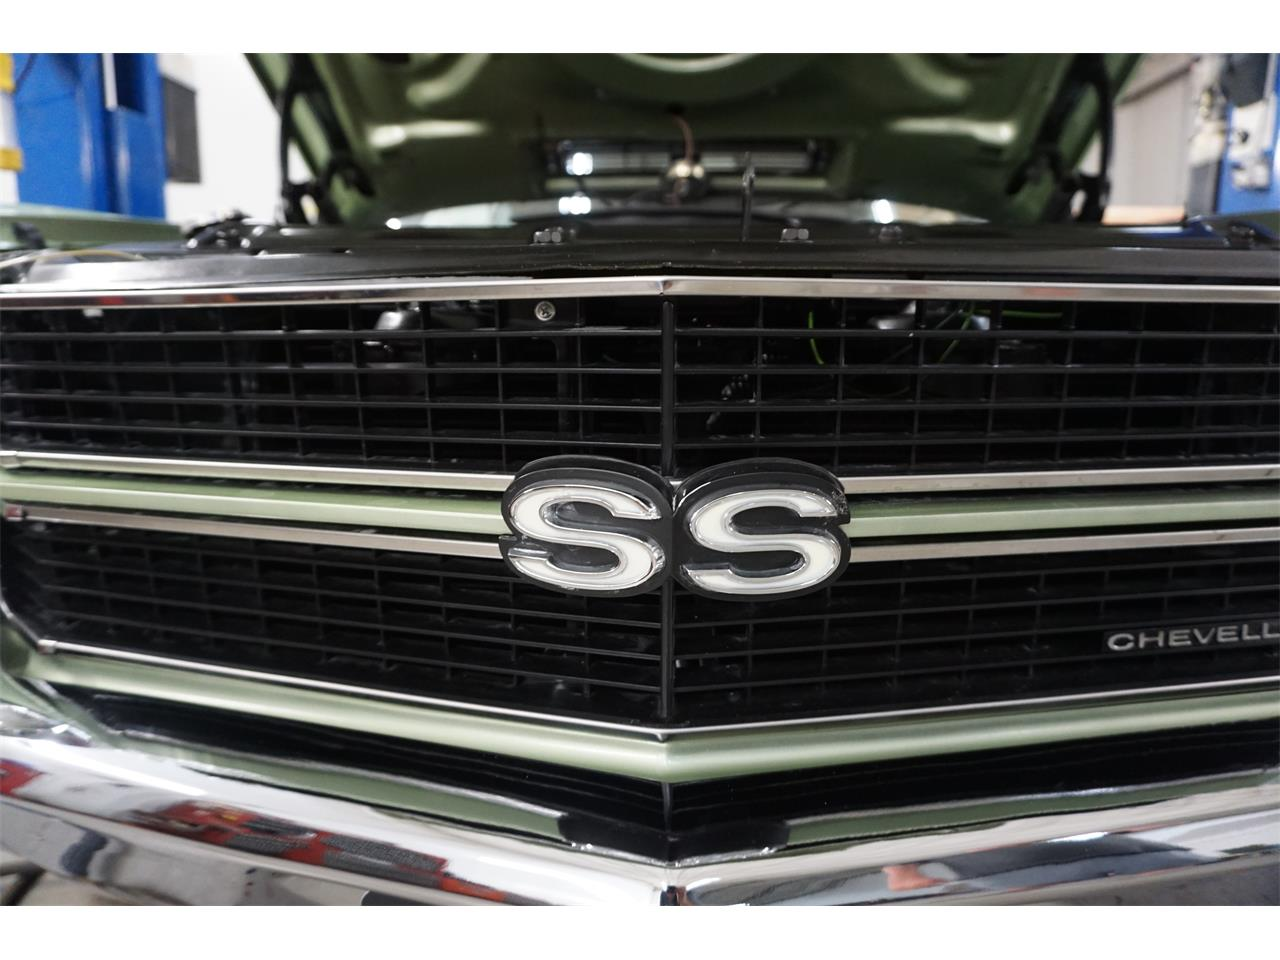 Large Picture of Classic '70 Chevrolet Chevelle located in Maryland - $55,900.00 - QN0Q